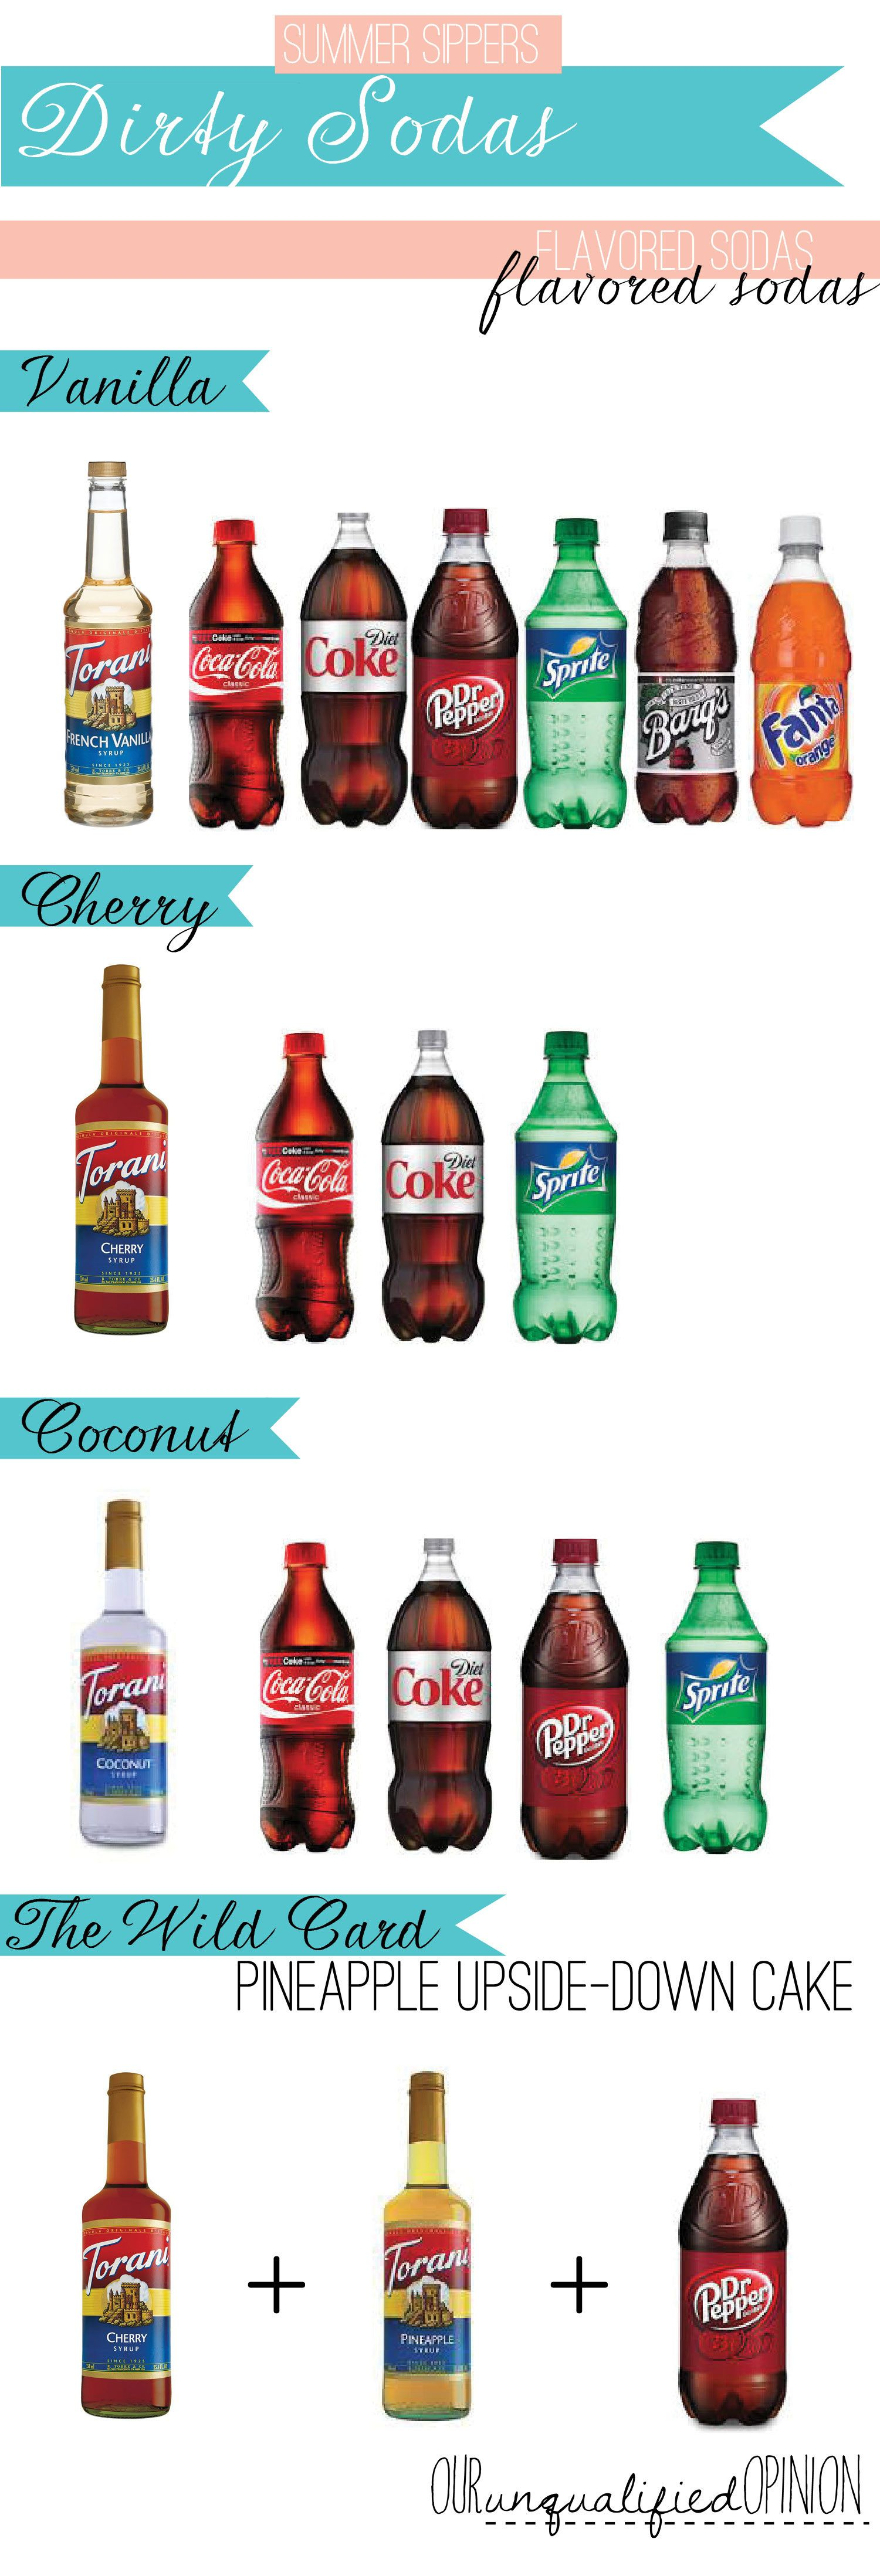 Dirty Soda Mixes Mix Ups Of Syrups To Try With Your Favorite Sodas Taking It Beyond Just The Diet Coke